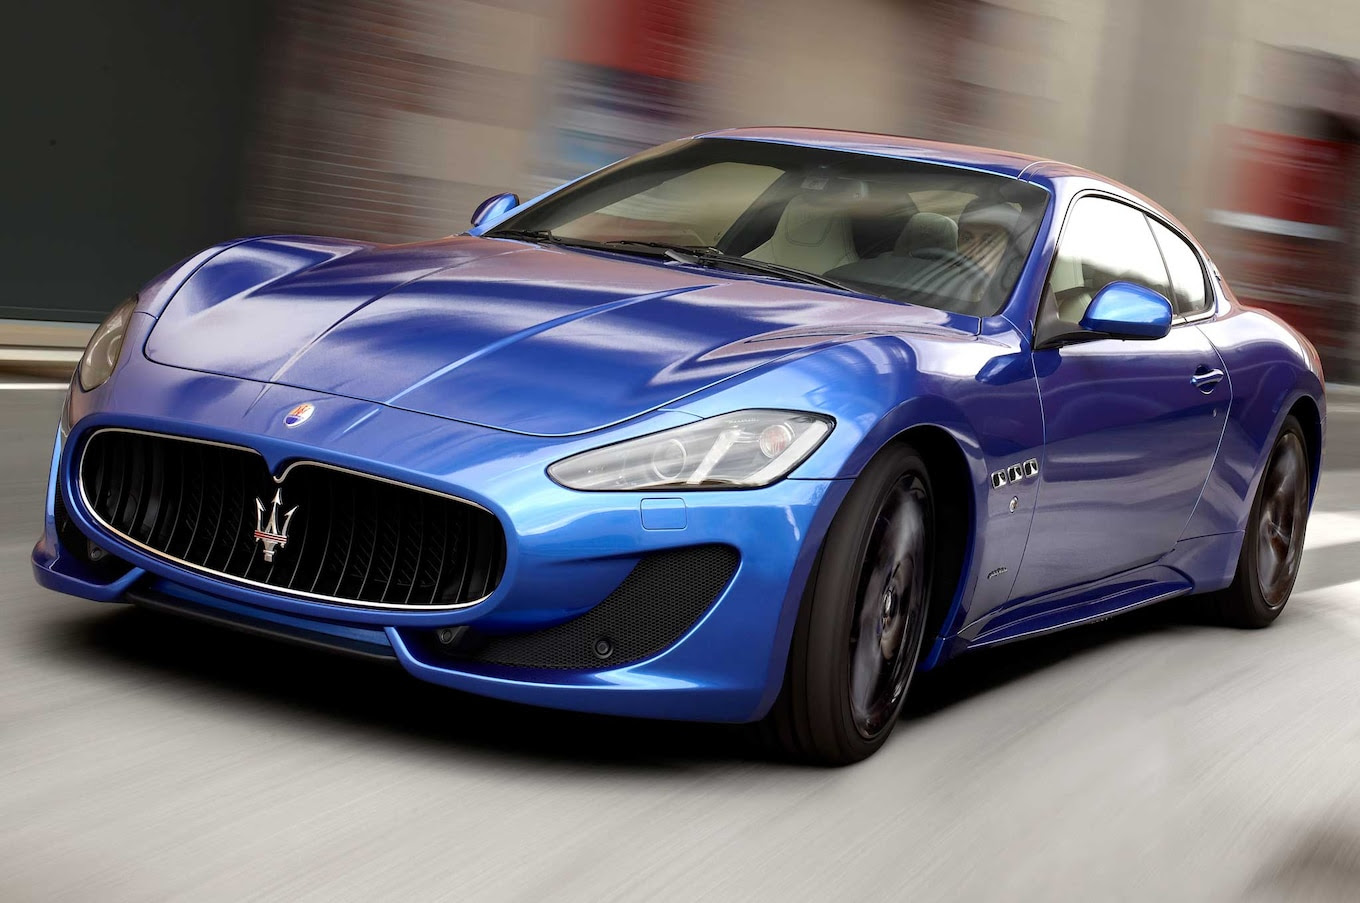 New Maserati Gran Sport Details Emerge Before the Coupe\u002639;s Debut